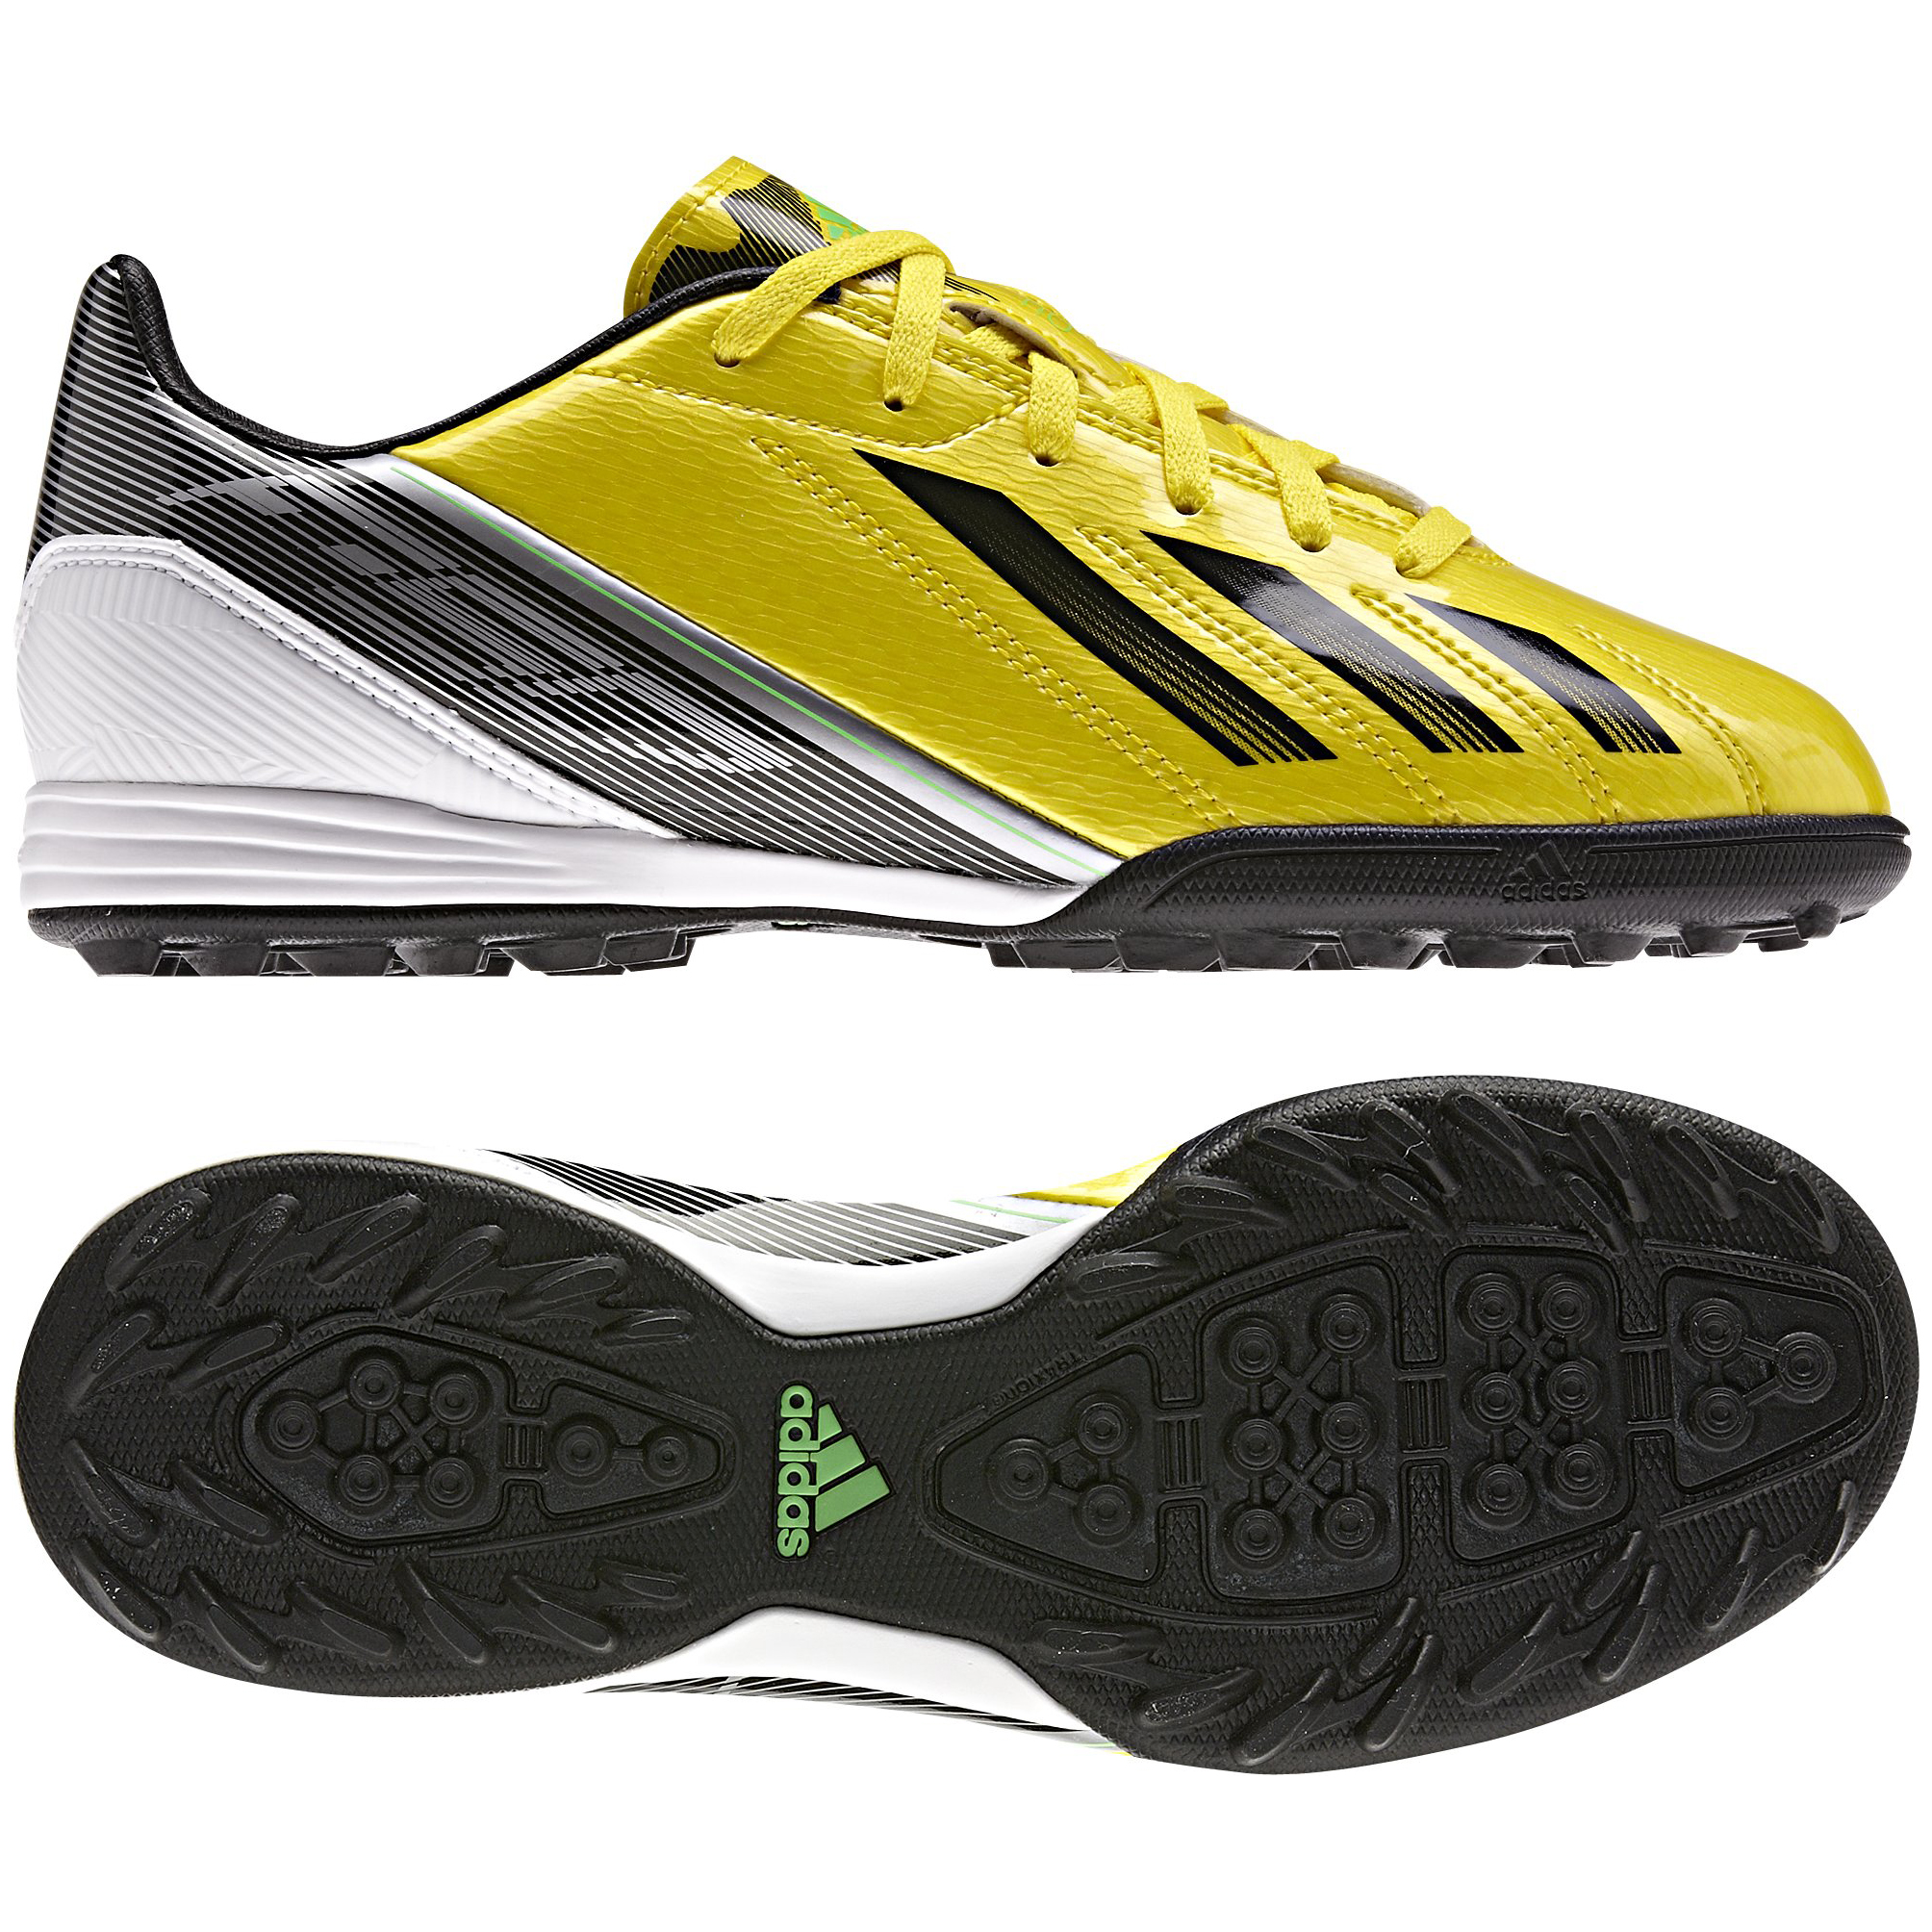 adidas Adizero F10 TRX Astroturf Trainers- Vivid Yellow/Black/Green Zest  - Kids